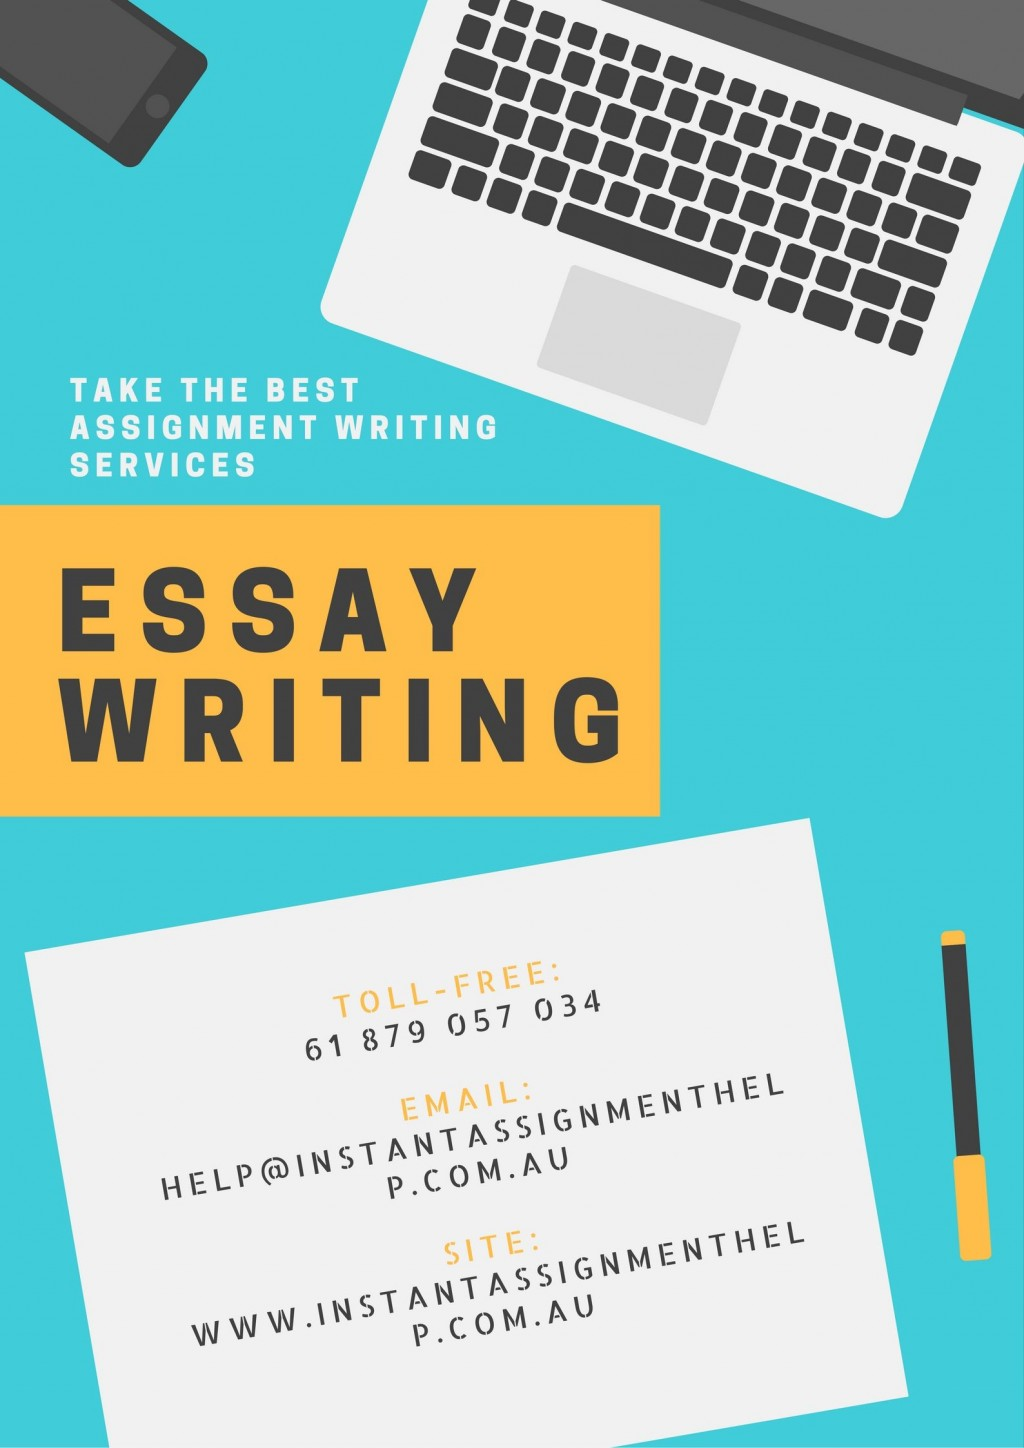 004 Essay Writing Help Example Frightening Contests For Middle School Students Near Me Australia Large